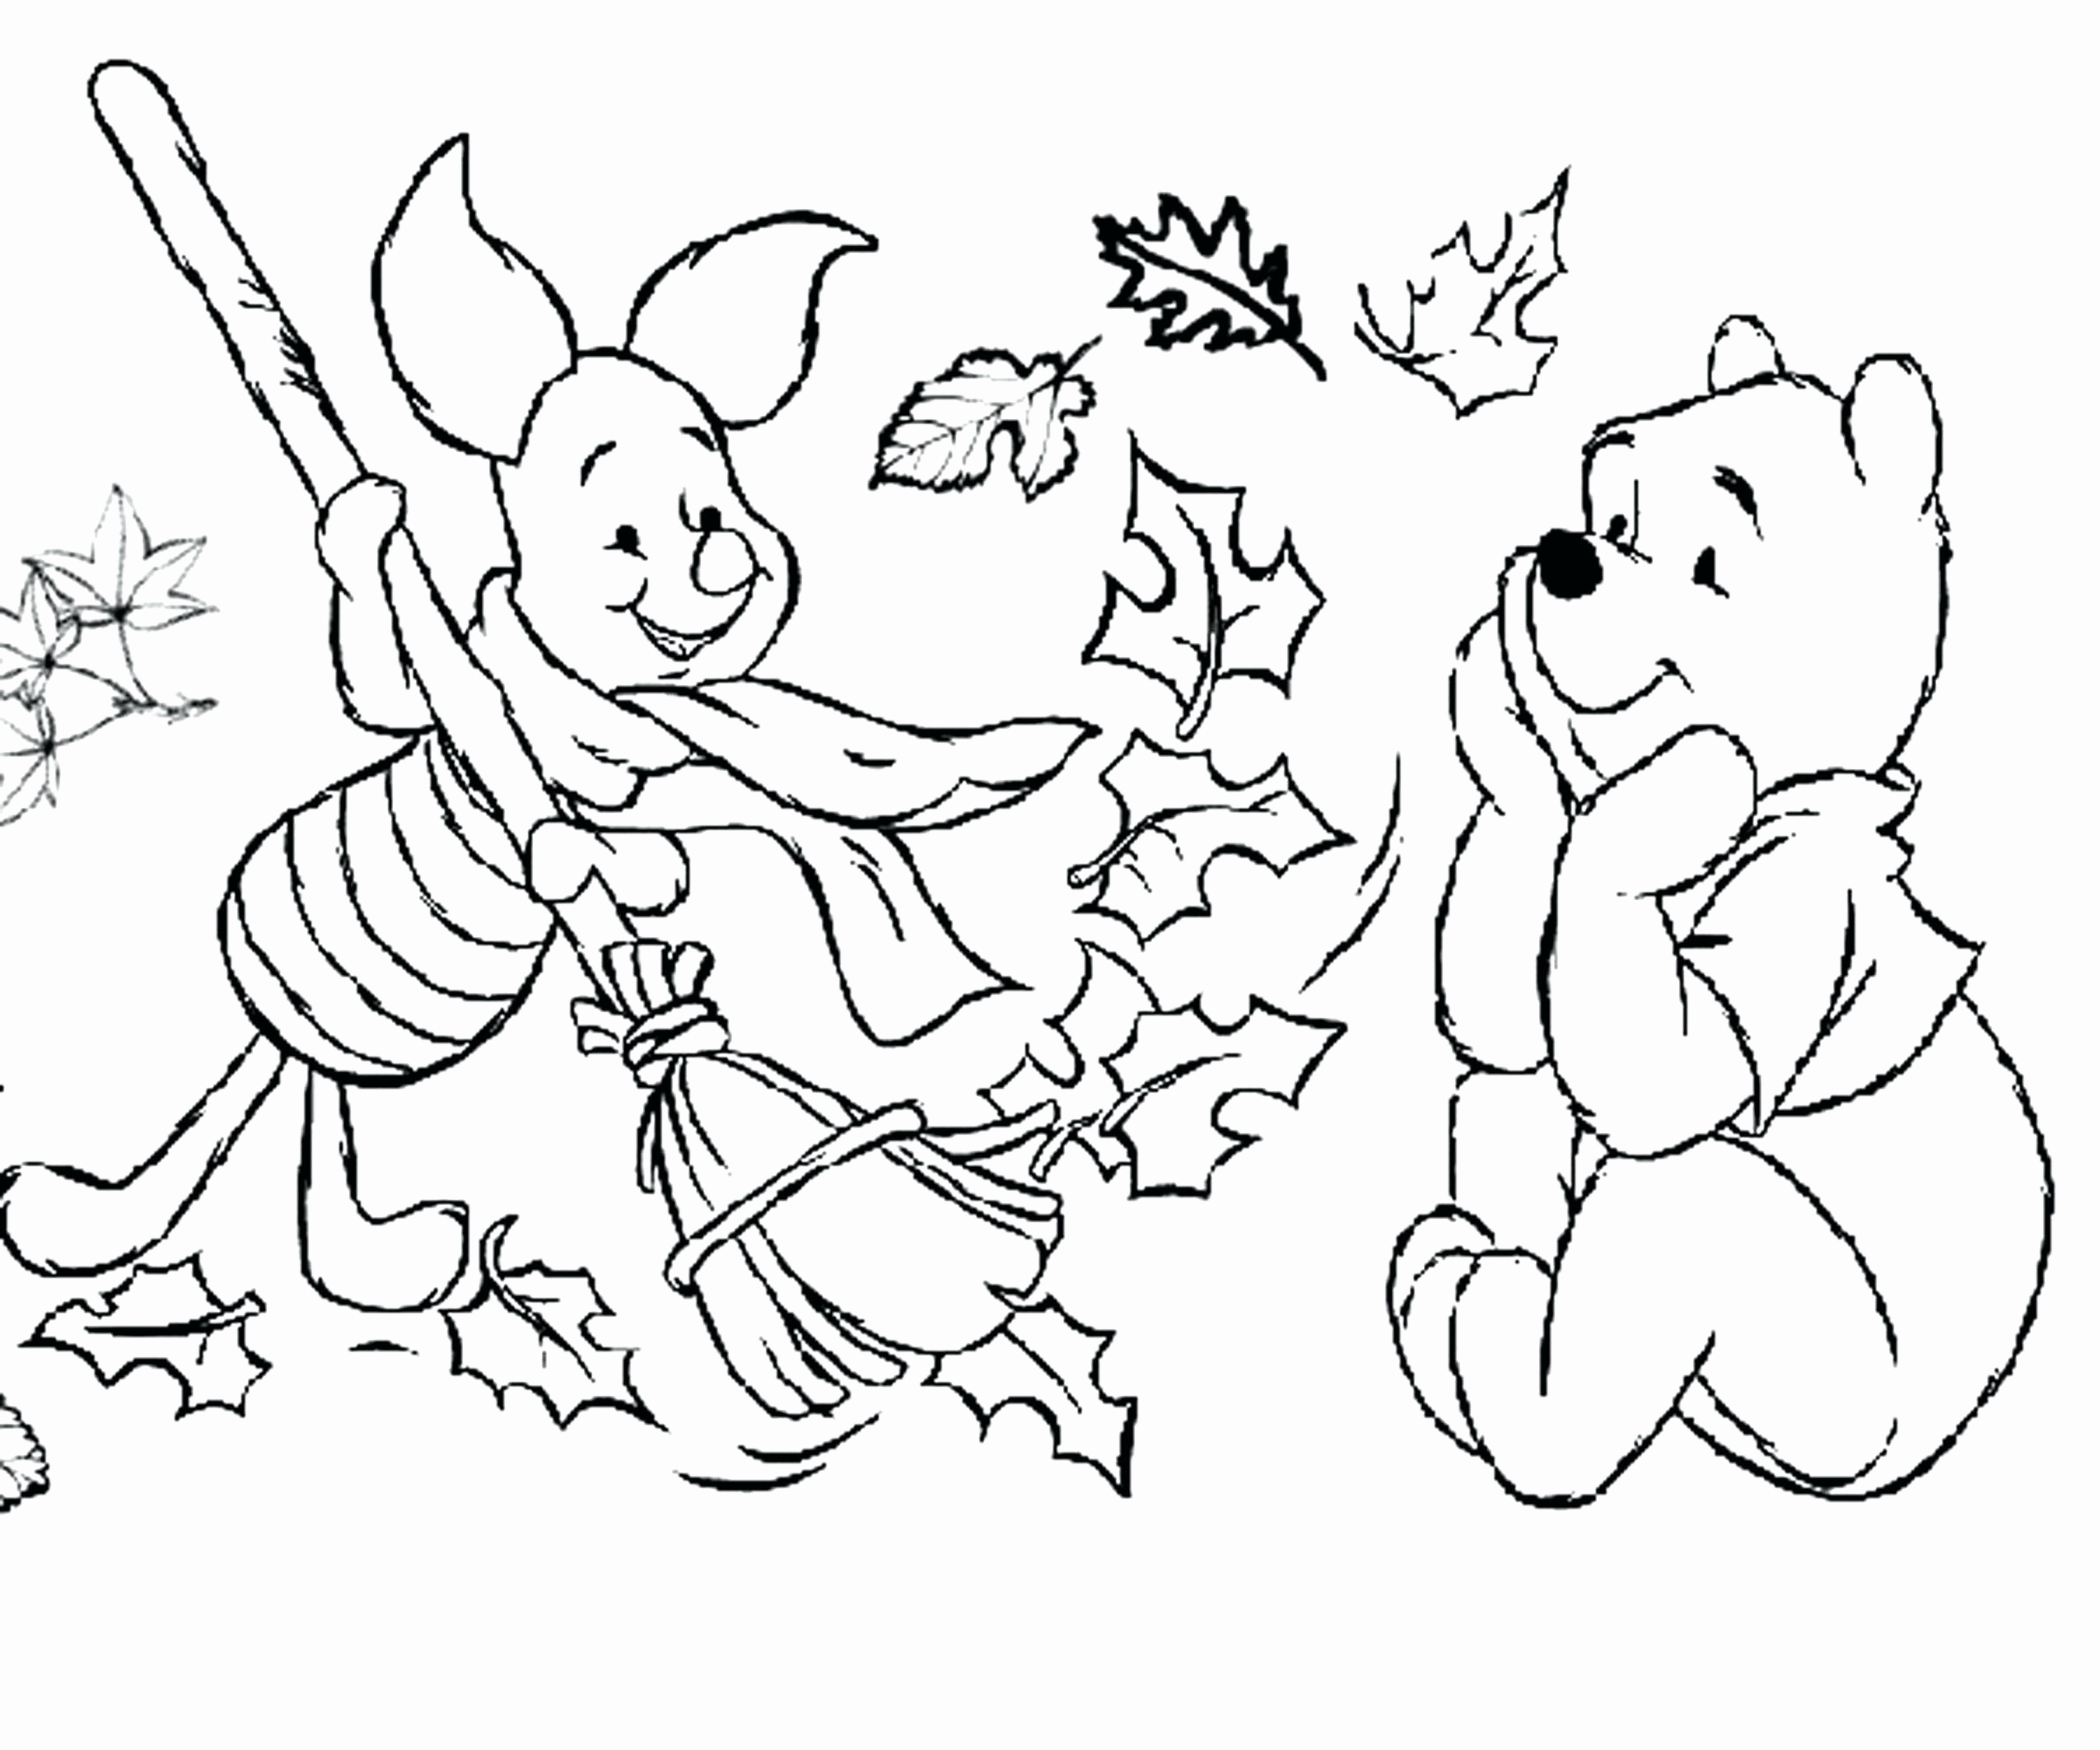 preschoolers coloring pages Download-Spider Coloring Pages Preschool Fall Coloring Pages 0d Coloring Page Fall Coloring Pages for Kids 3-f